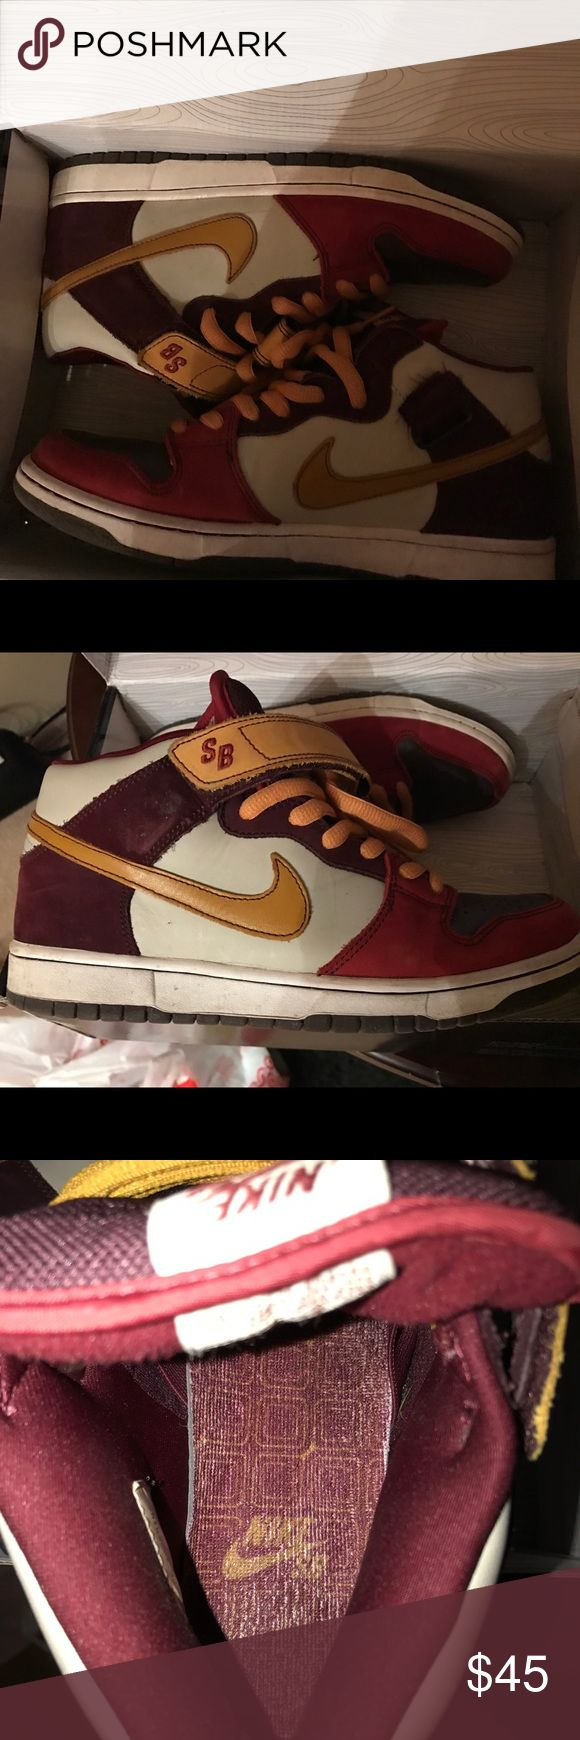 """Nike SB Dunk mid """"vapor"""" size 9.5 Barely worn old Nike sb Dunk mids w/ strap. """"Vapor"""" colorway. Great condition Nike Shoes Sneakers"""